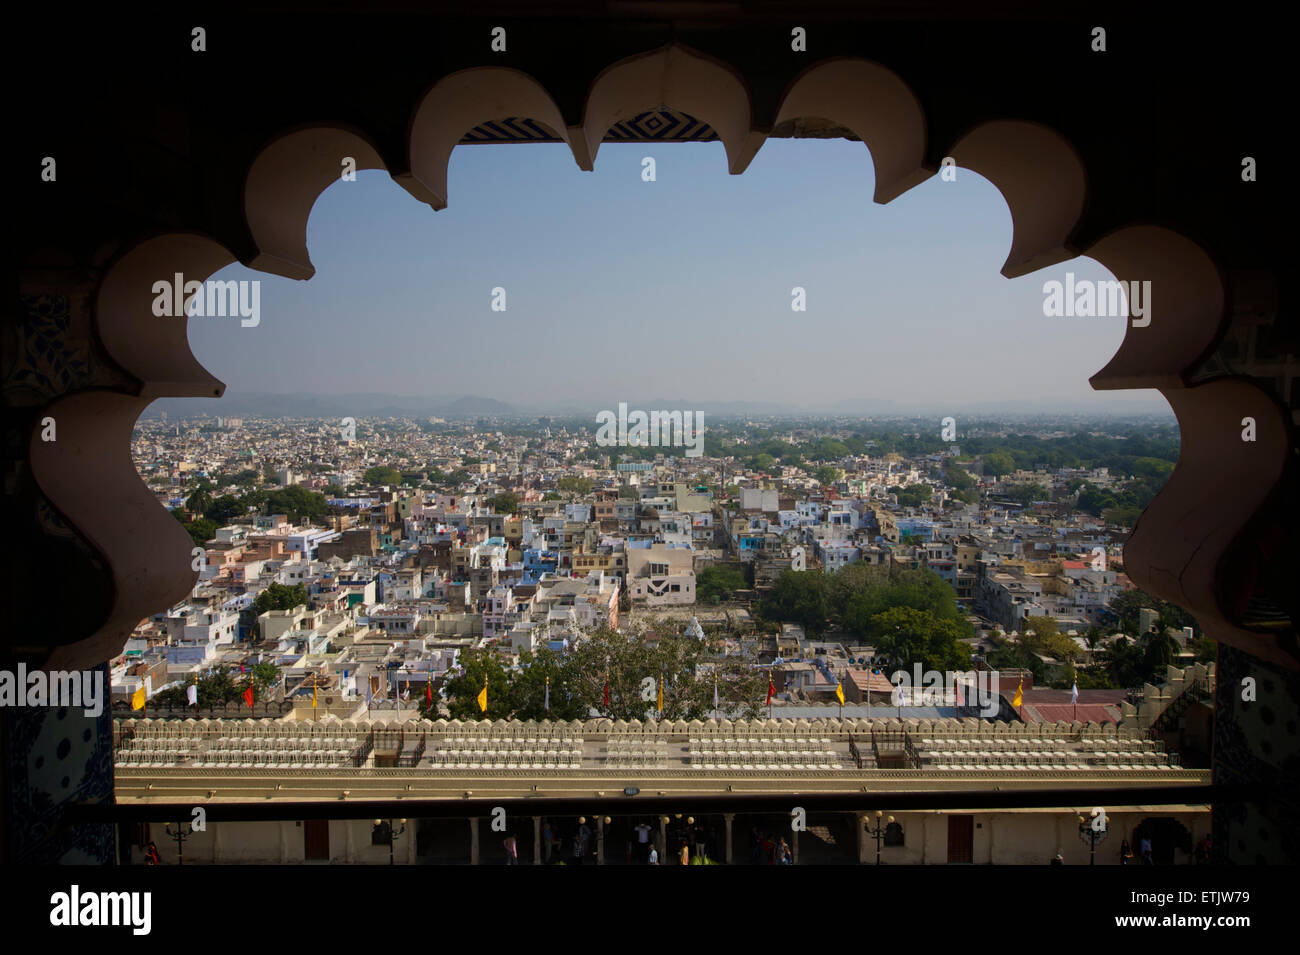 View from the City Palace of Udaipur, Rajasthan, India - Stock Image